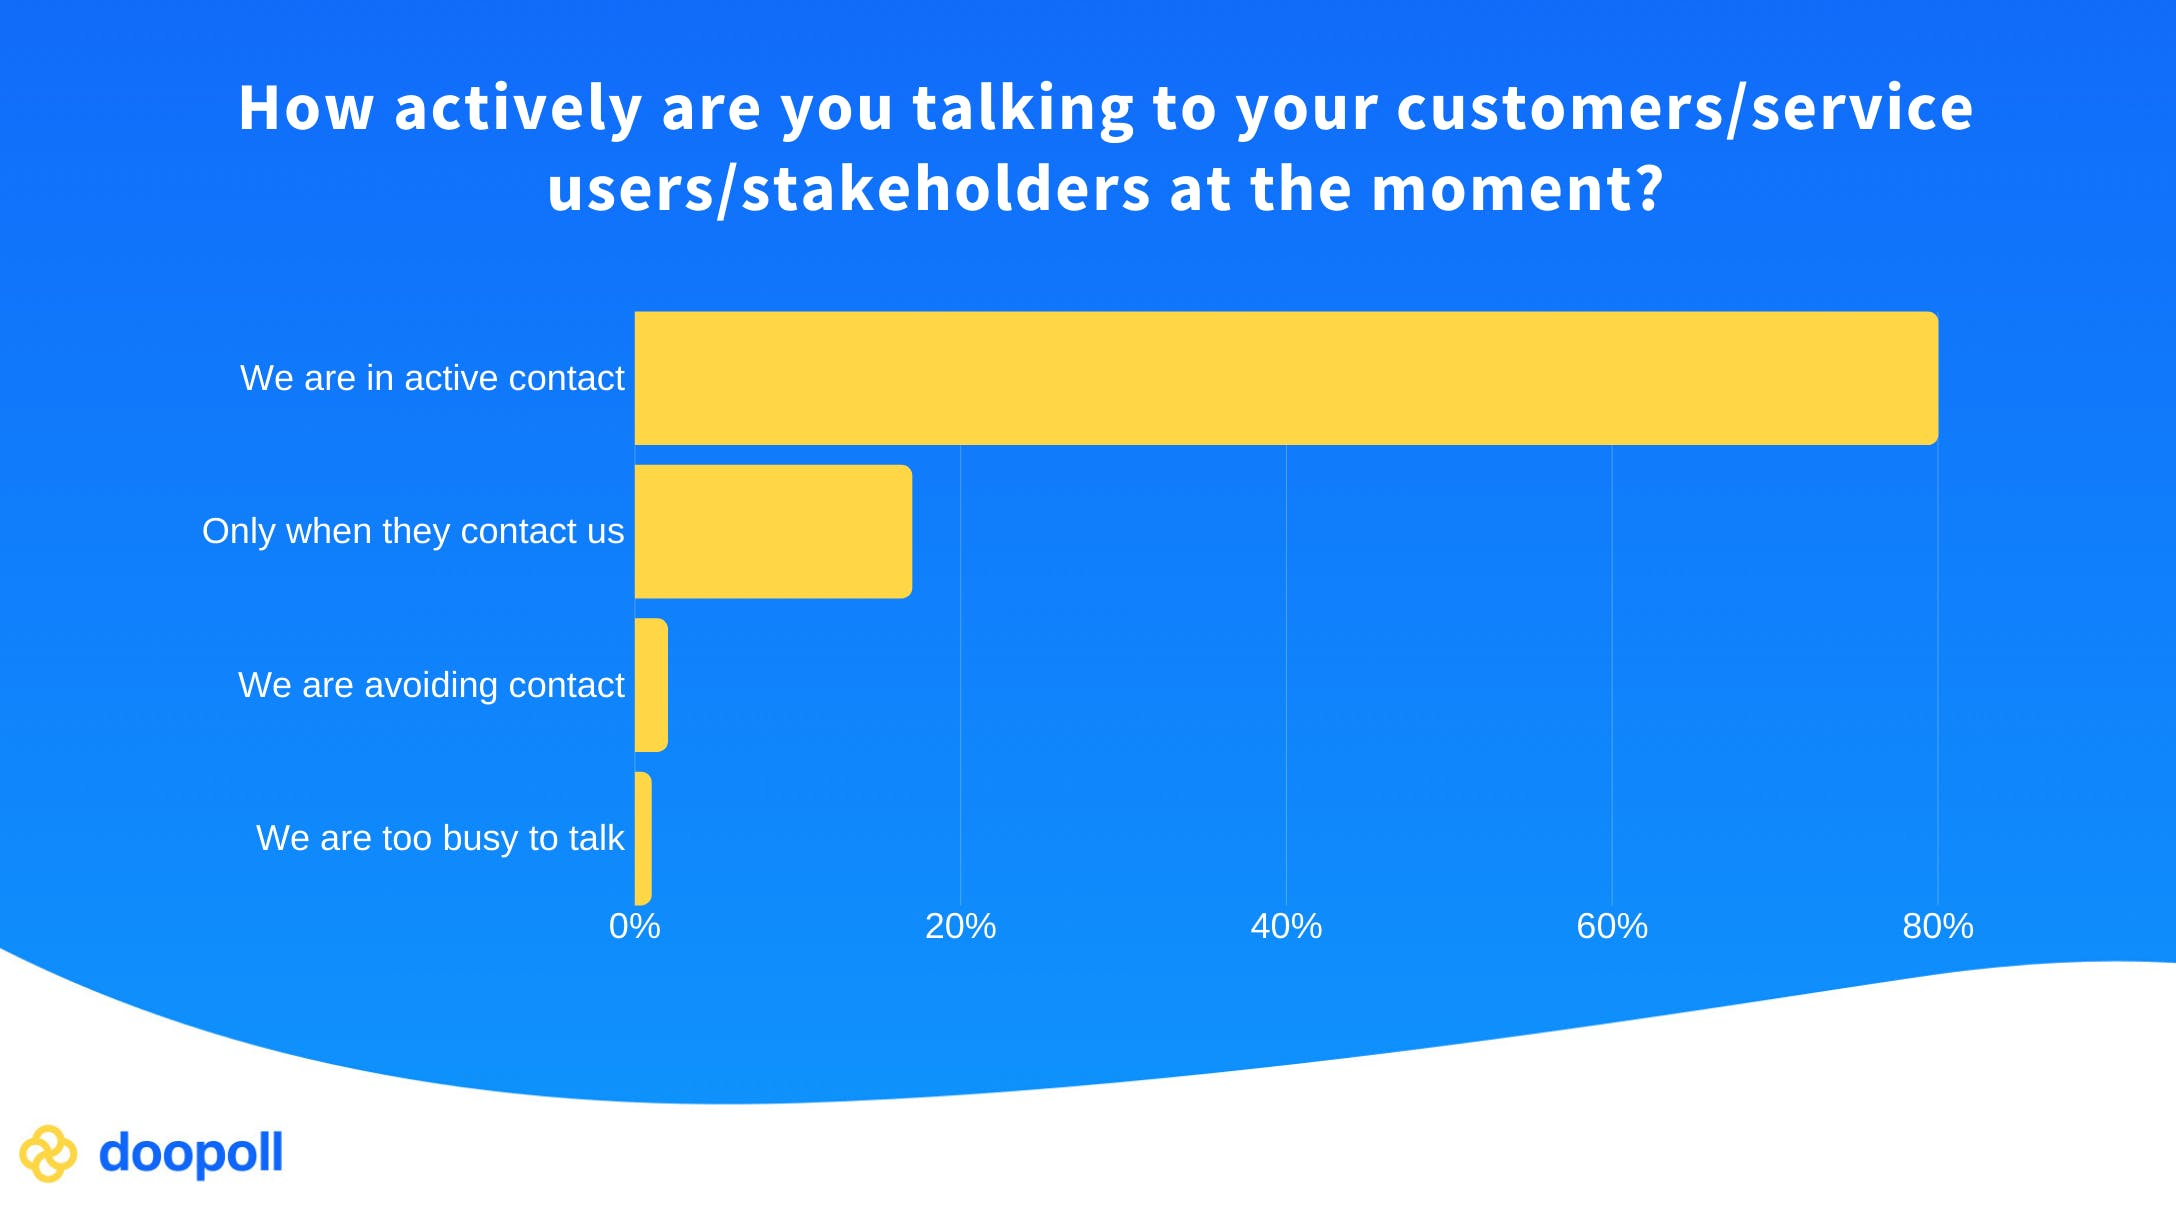 Chart showing how 80% of customers are in active contact with customers